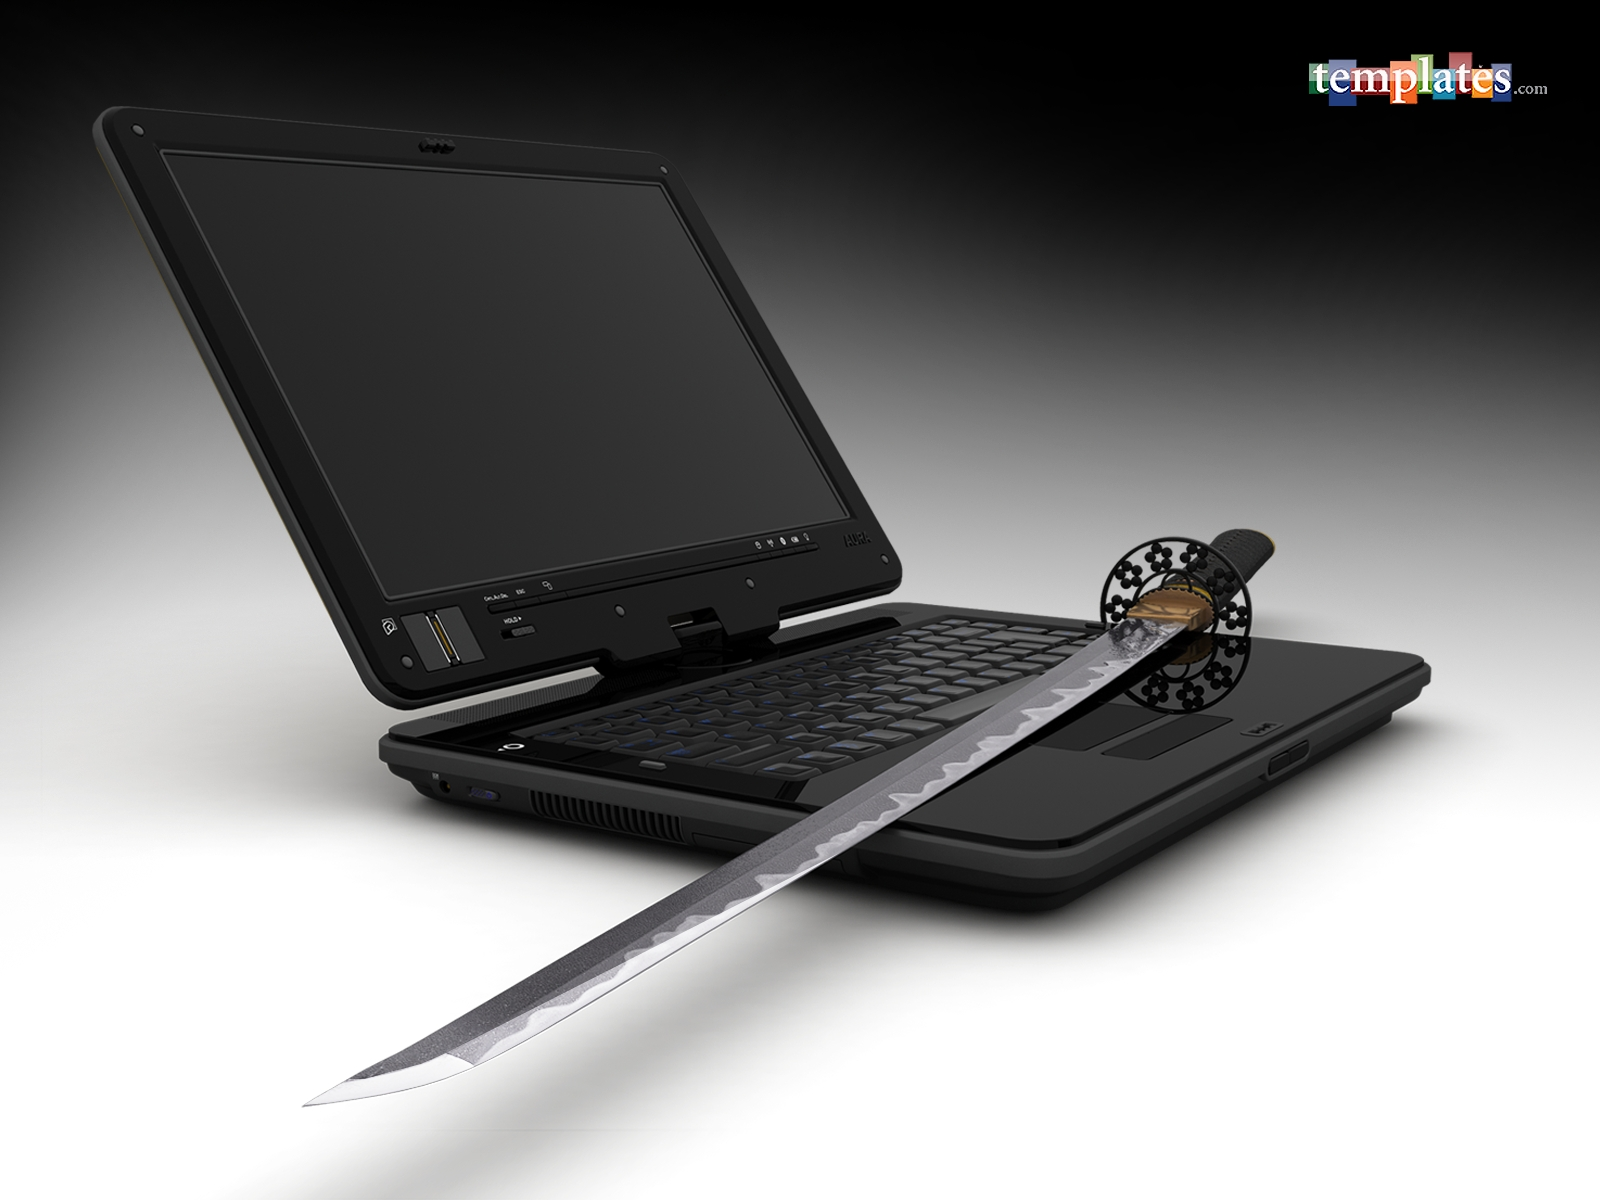 laptops dell apple hp essay I requested a writer from essaypro to write my english essay on jane eyre comparative analysis of hp and dell apple, sony or hp manufacture computers.